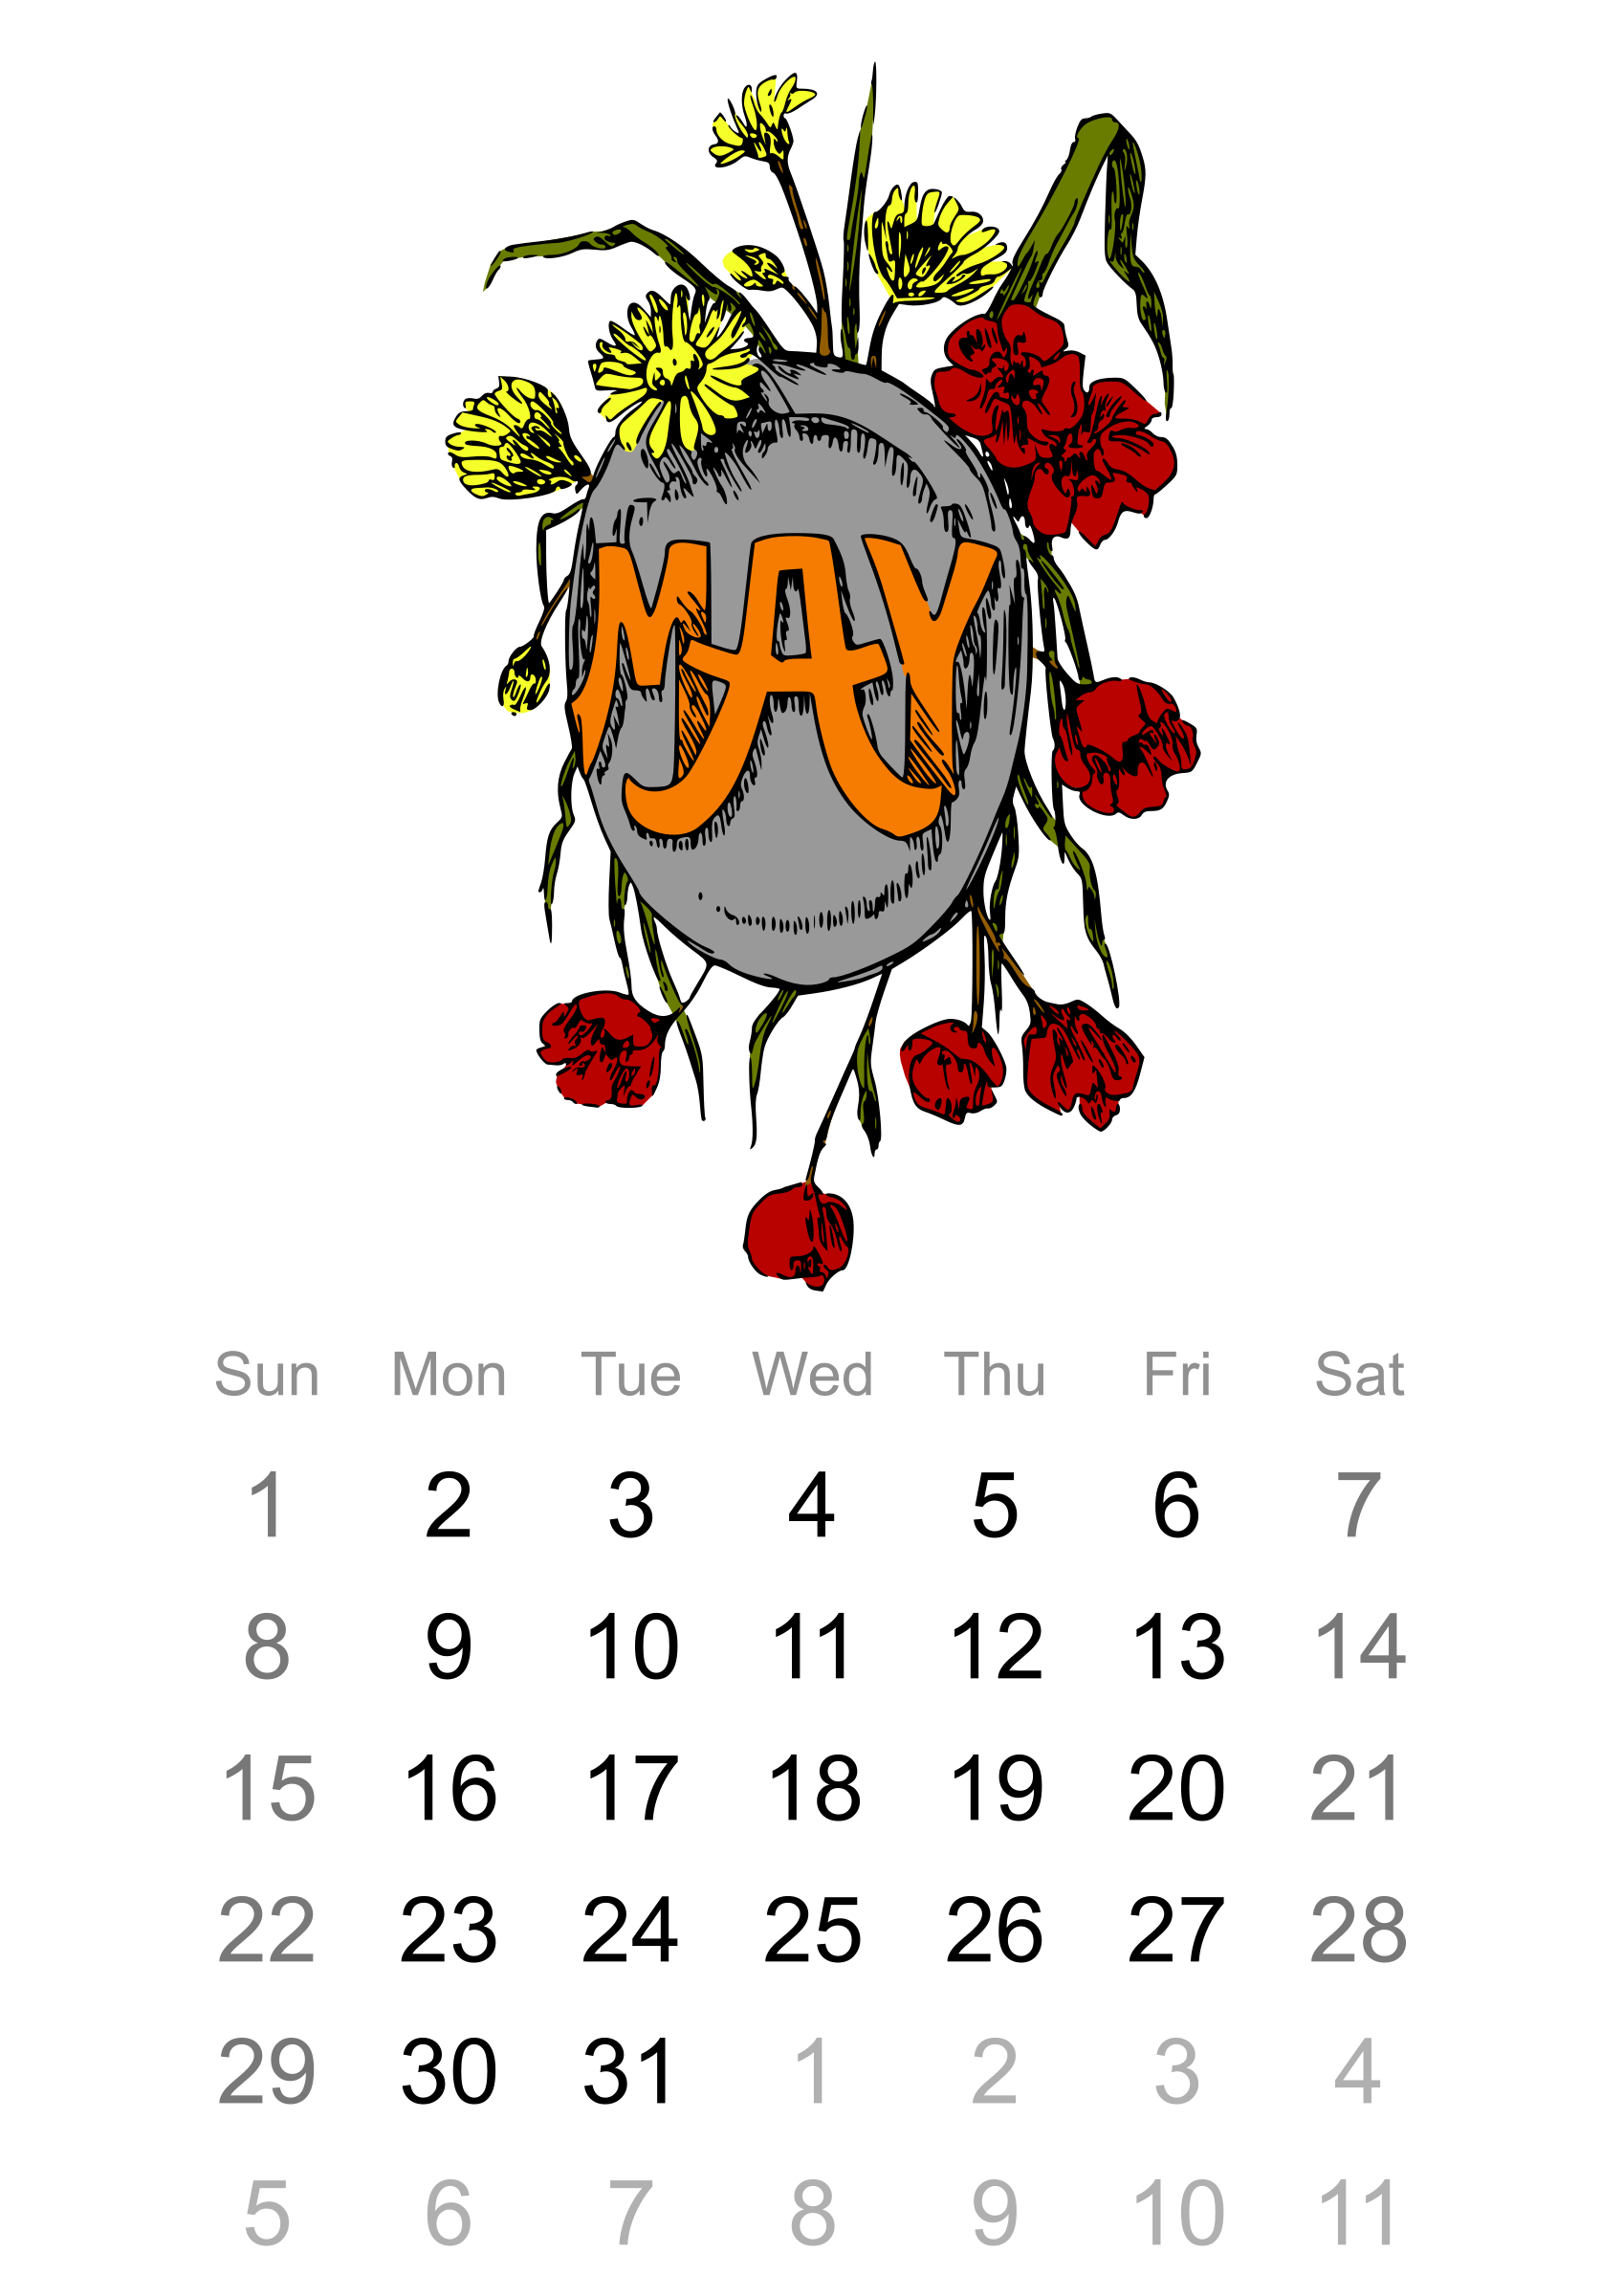 2016 May calendar by Firkin